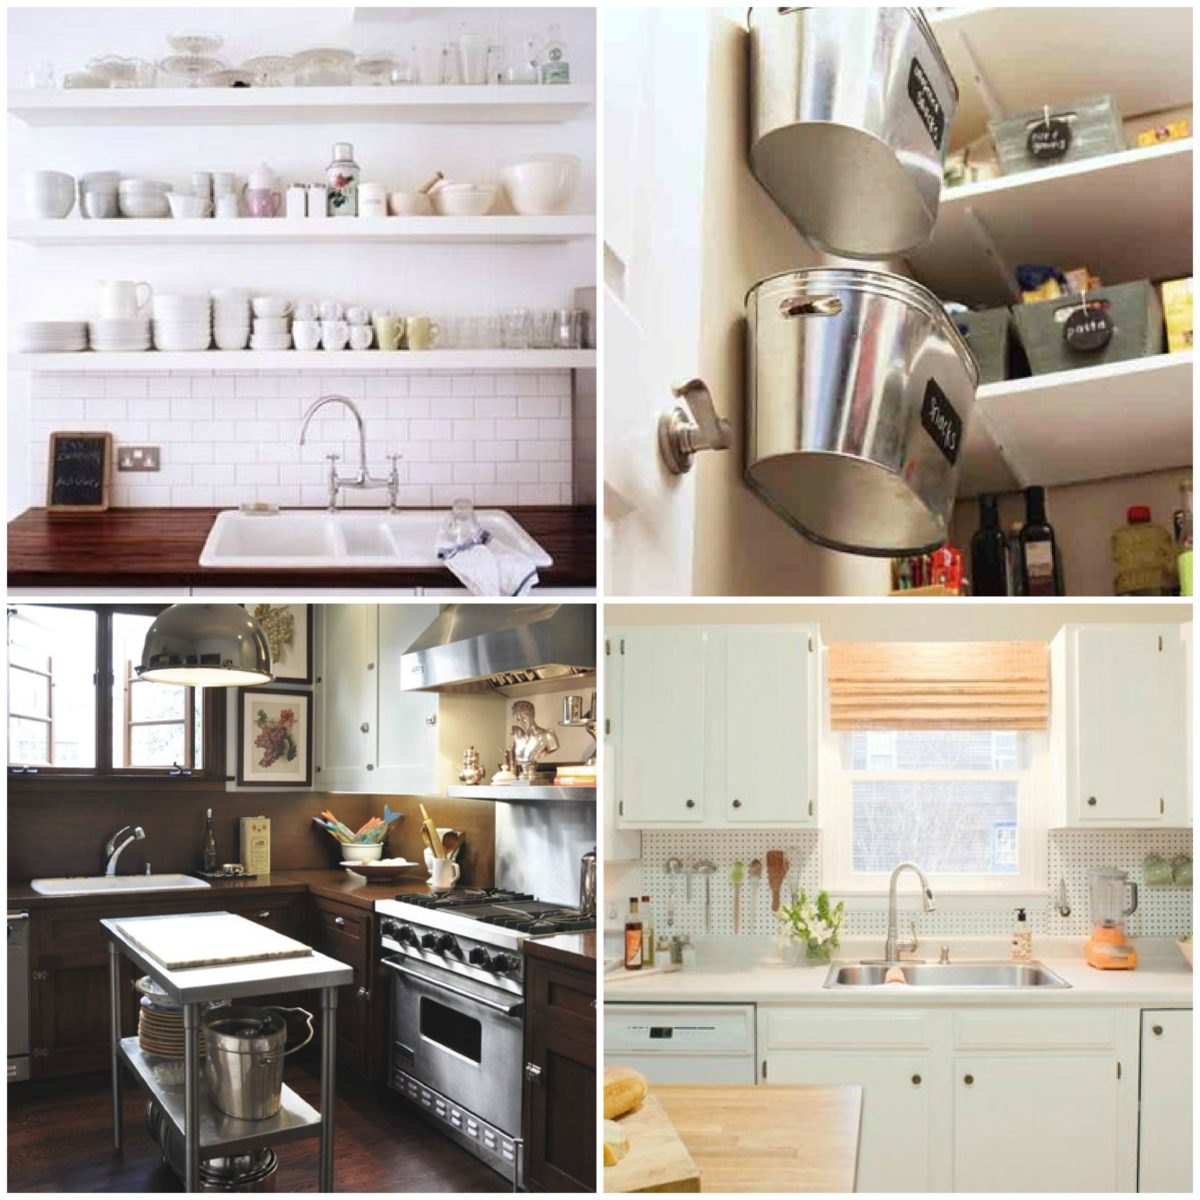 Maximize Small Kitchen Space Part - 49: ... Our Floor Space For Storage. We Need To Build Up And Use Our Ceiling  Height In Our Storage. Bookshelves Can Store More Than Books And Utilize  The Height ...